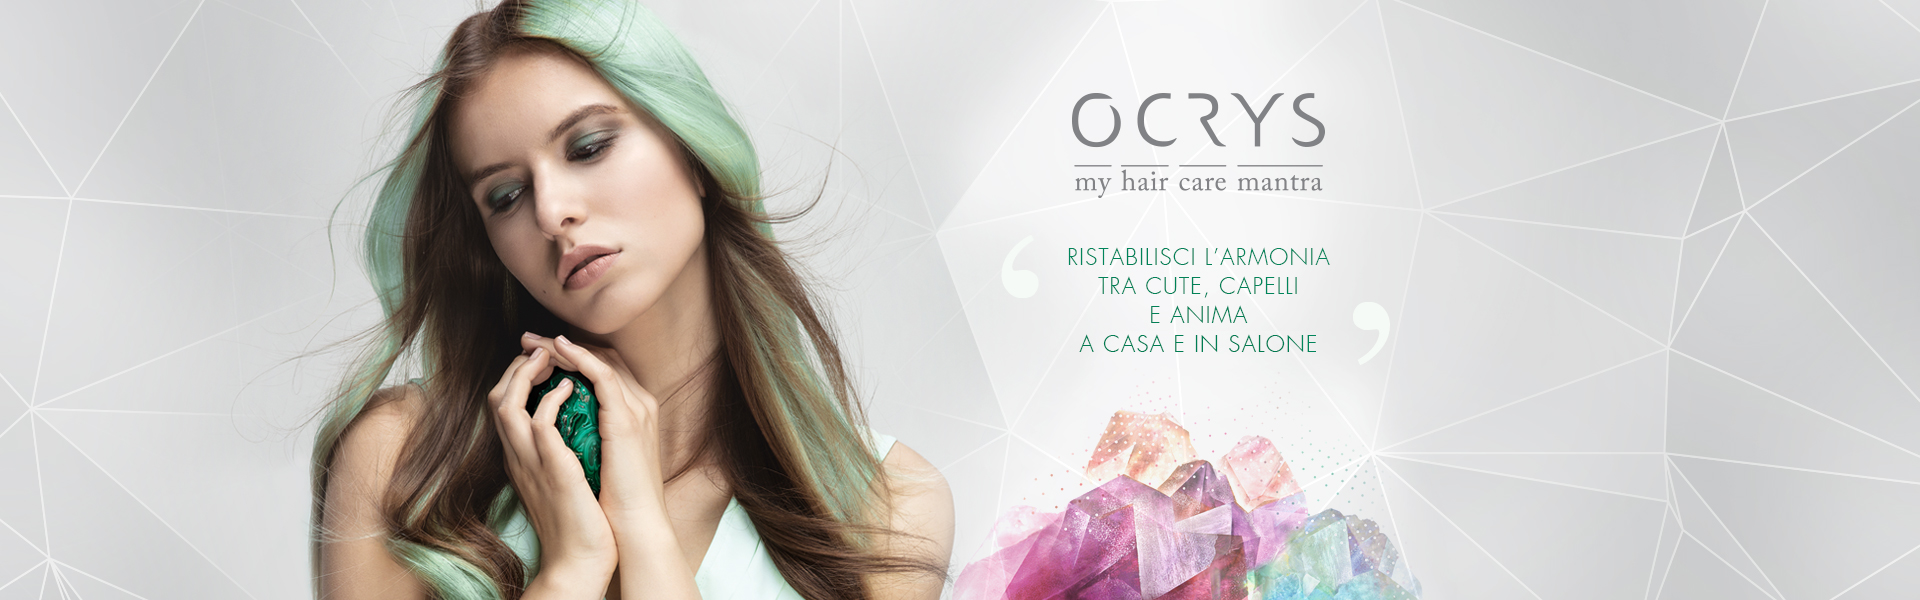 banner_centrali_OCRYS